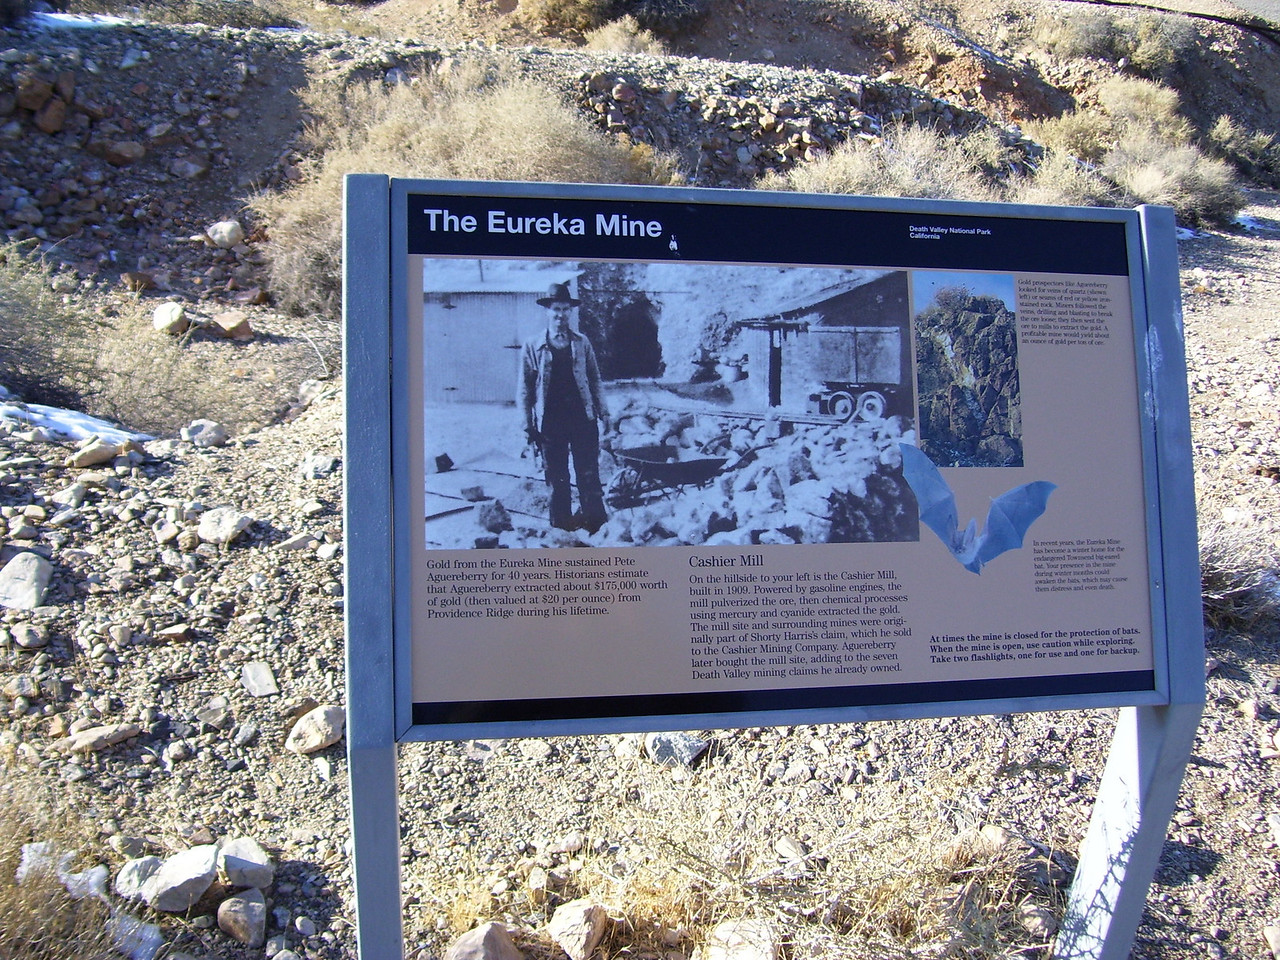 Death Valley is filled with many old mines.